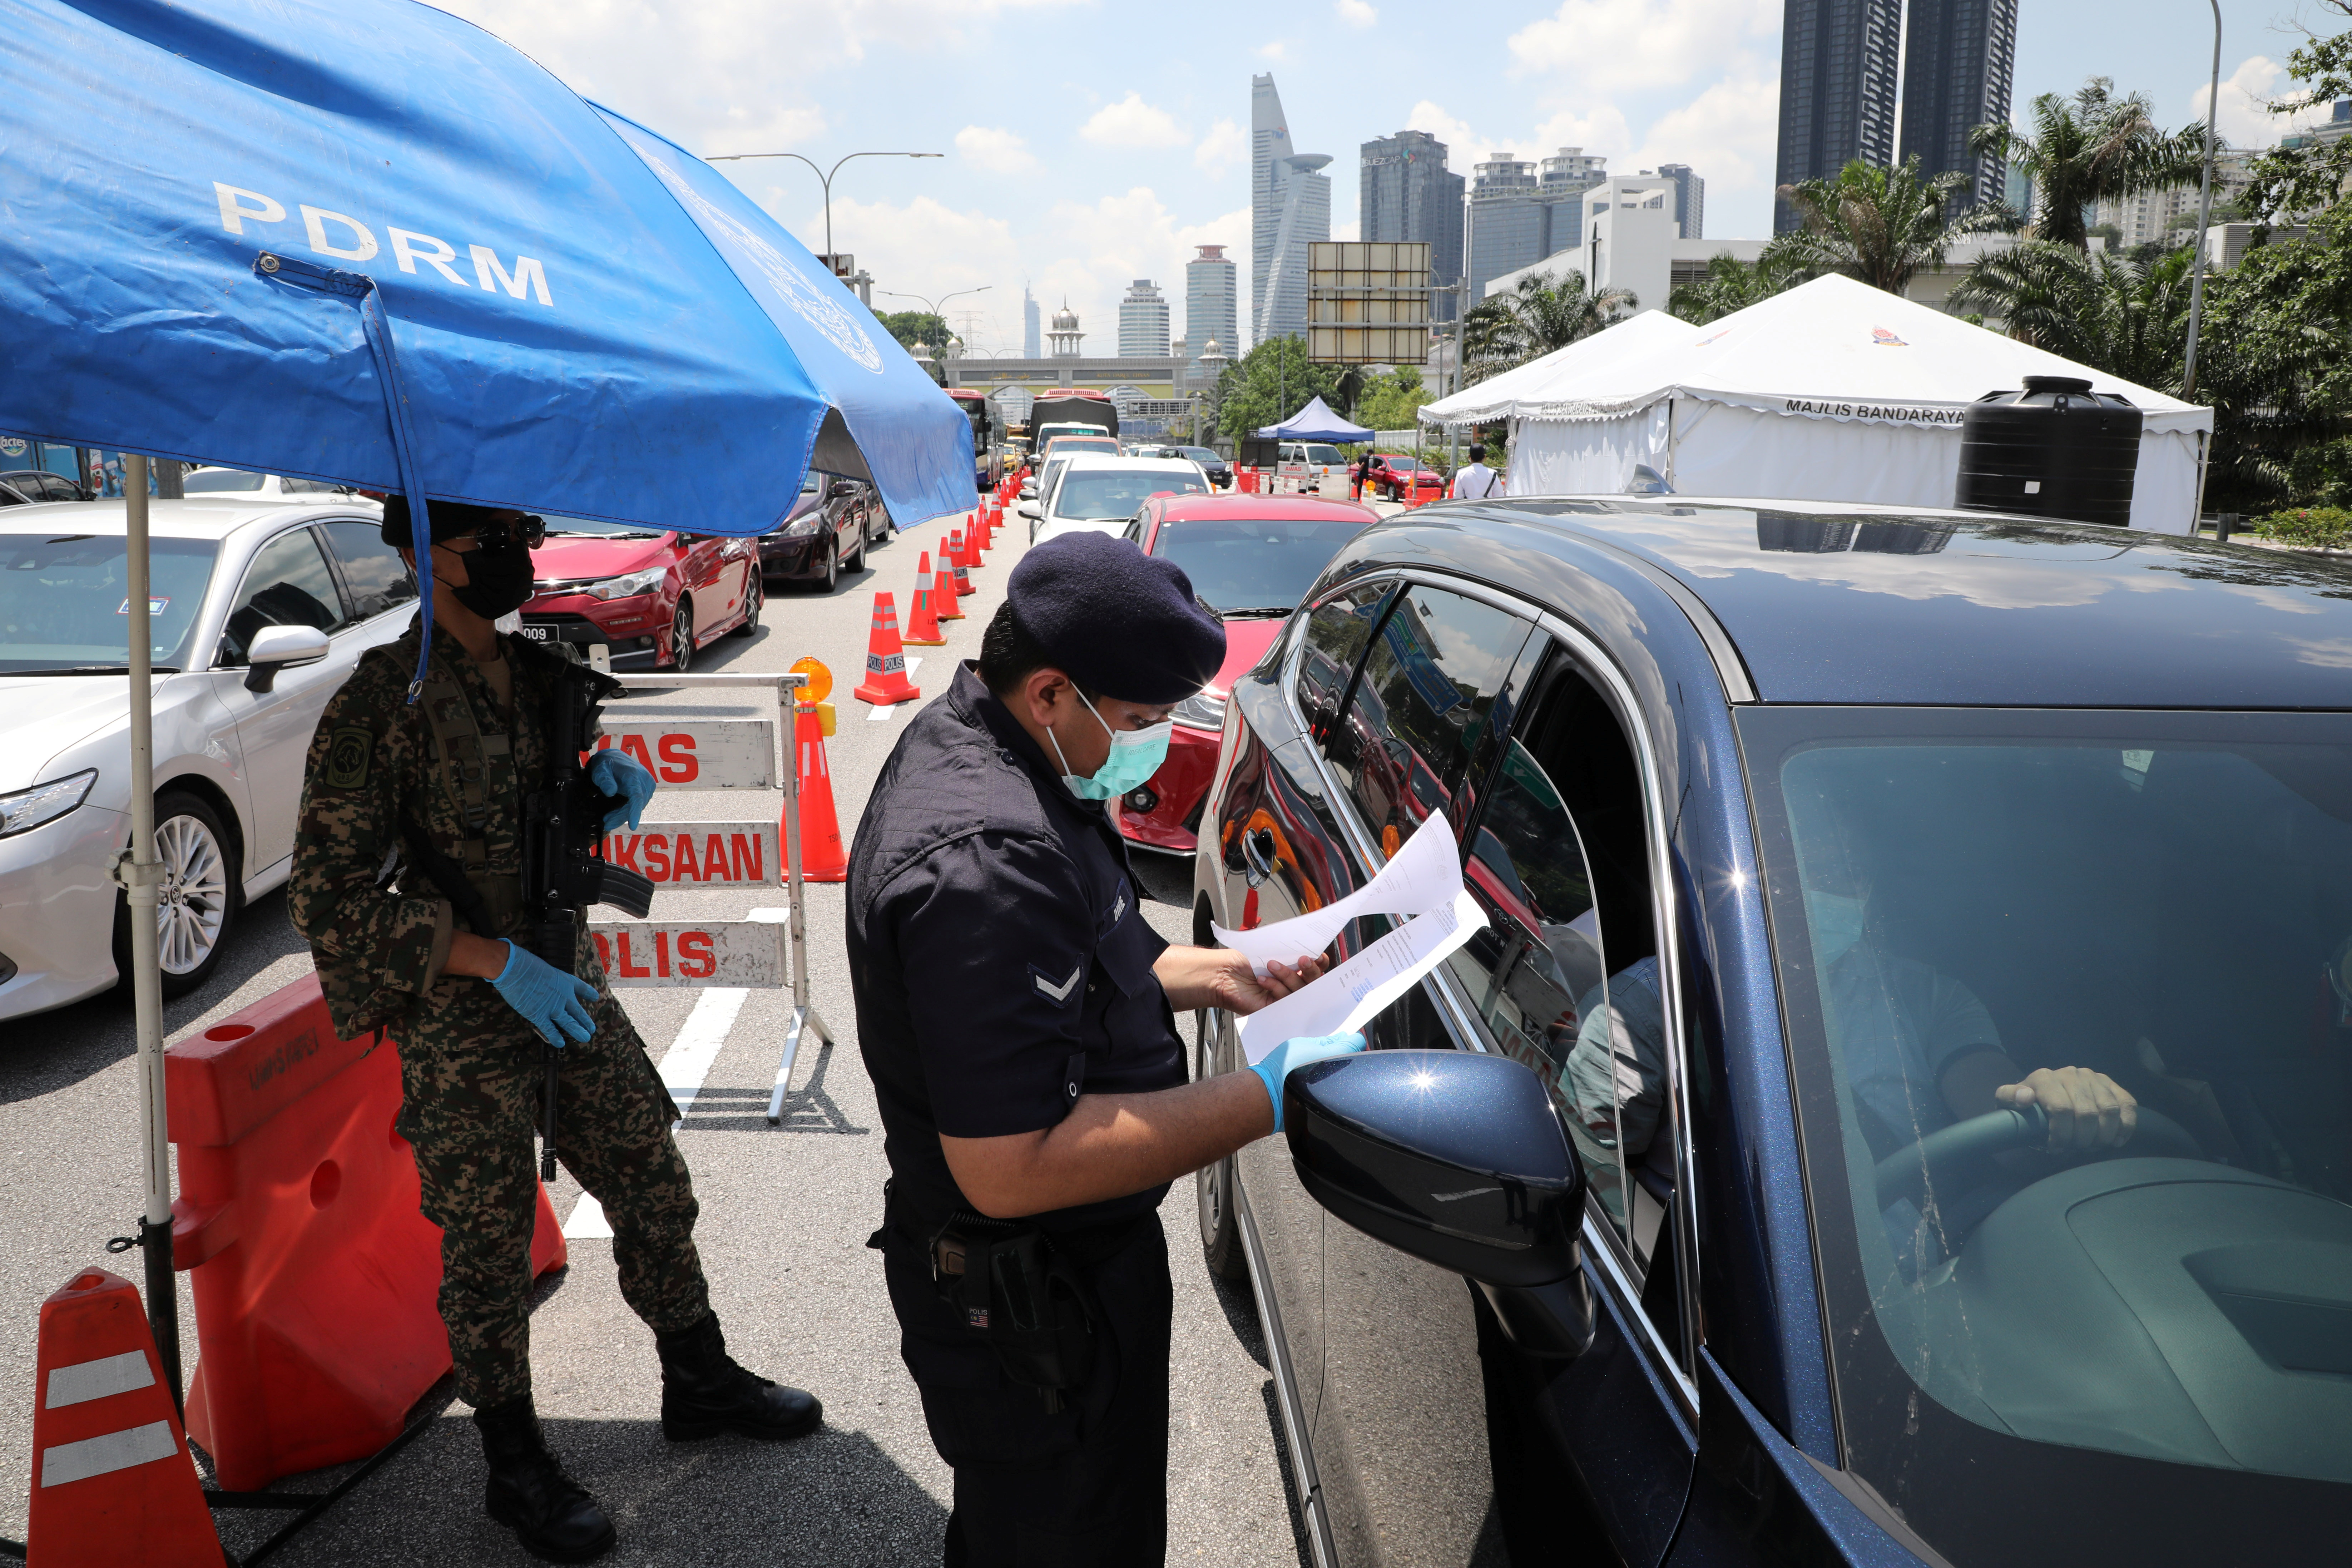 A police officer checks the documents of a driver at a roadblock during lockdown ahead of the Eid al-Fitr celebrations in an effort to prevent a large-scale transmission of the coronavirus disease (COVID-19), in Petaling Jaya, Malaysia May 10, 2021. REUTERS/Lim Huey Teng